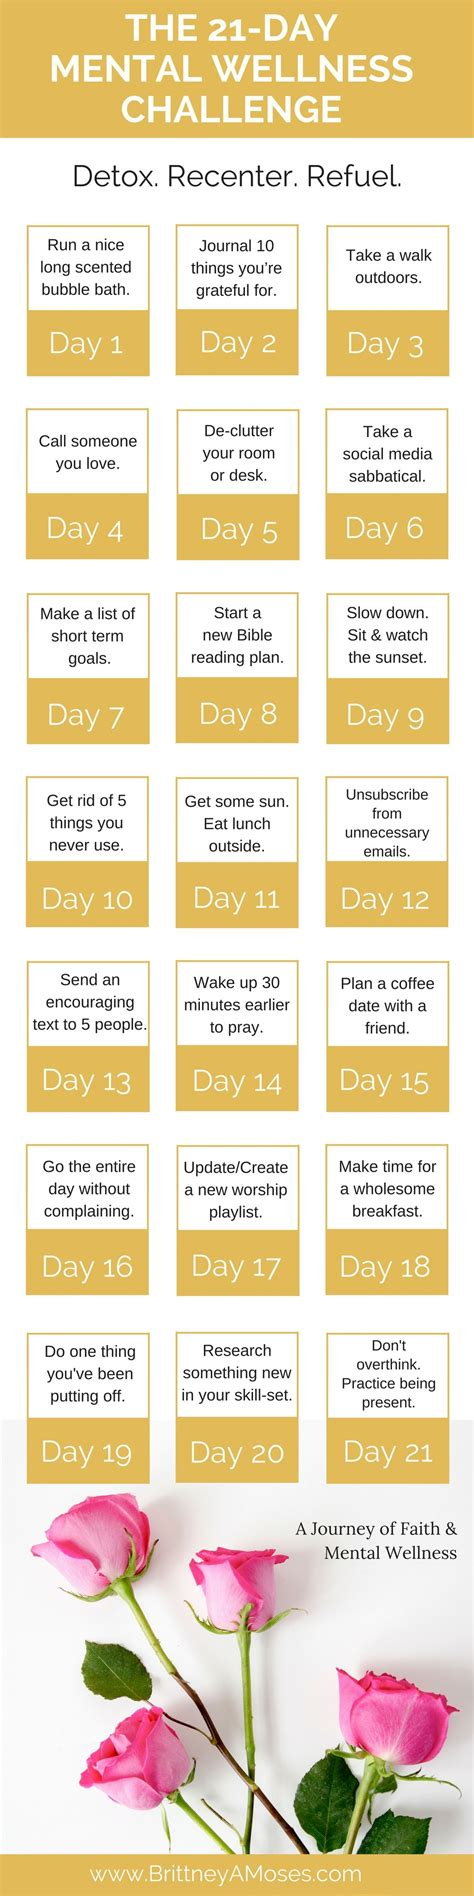 30 Day Mindset Detox Challenge by The 7 Day Anxiety Detox E Series Is Here 21st Mental